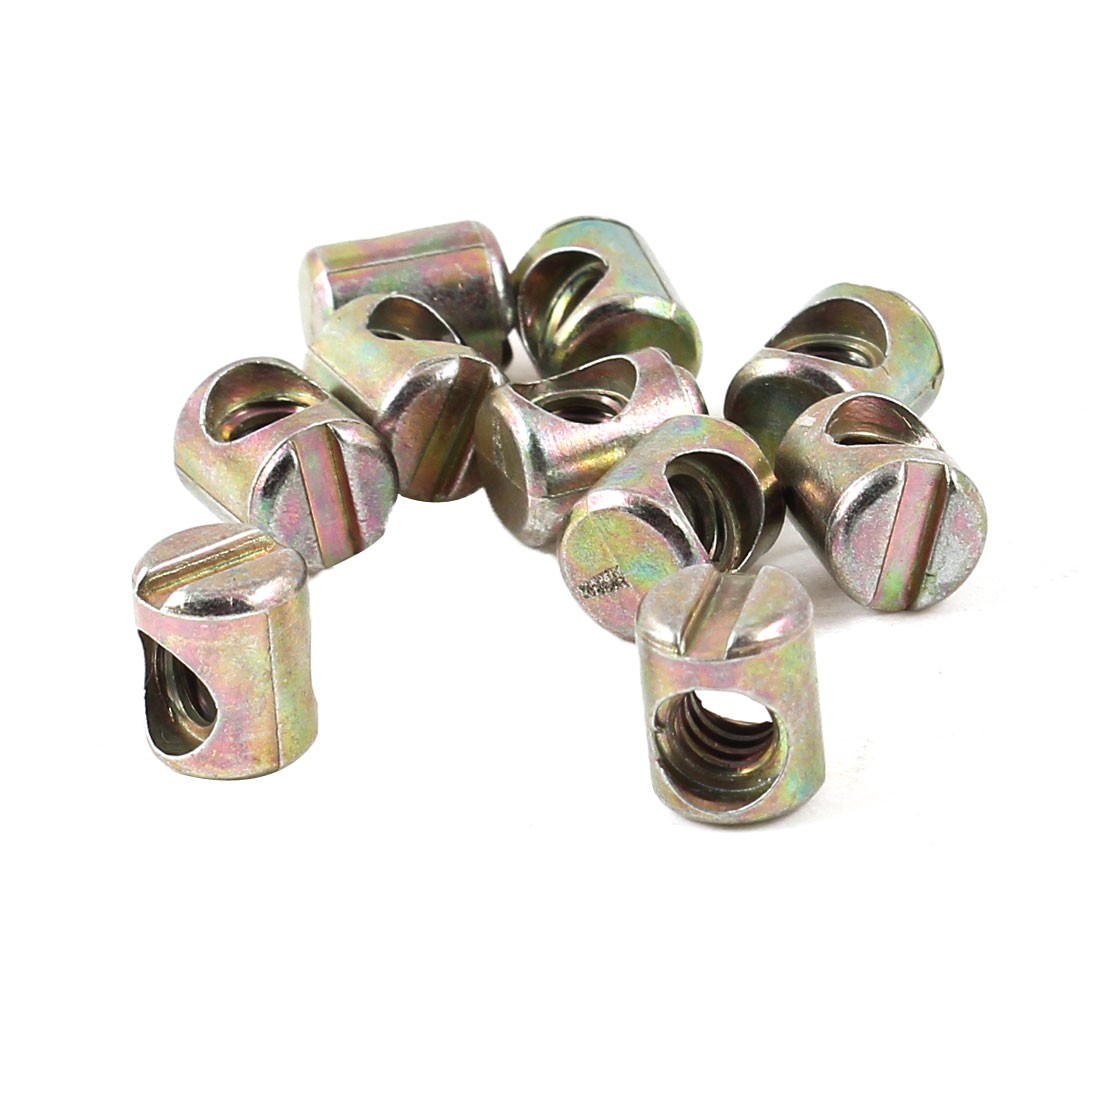 Furniture Fitting 4.5mm Female Thread Cross Dowel Barrel Bolts Nut 10 Pcs